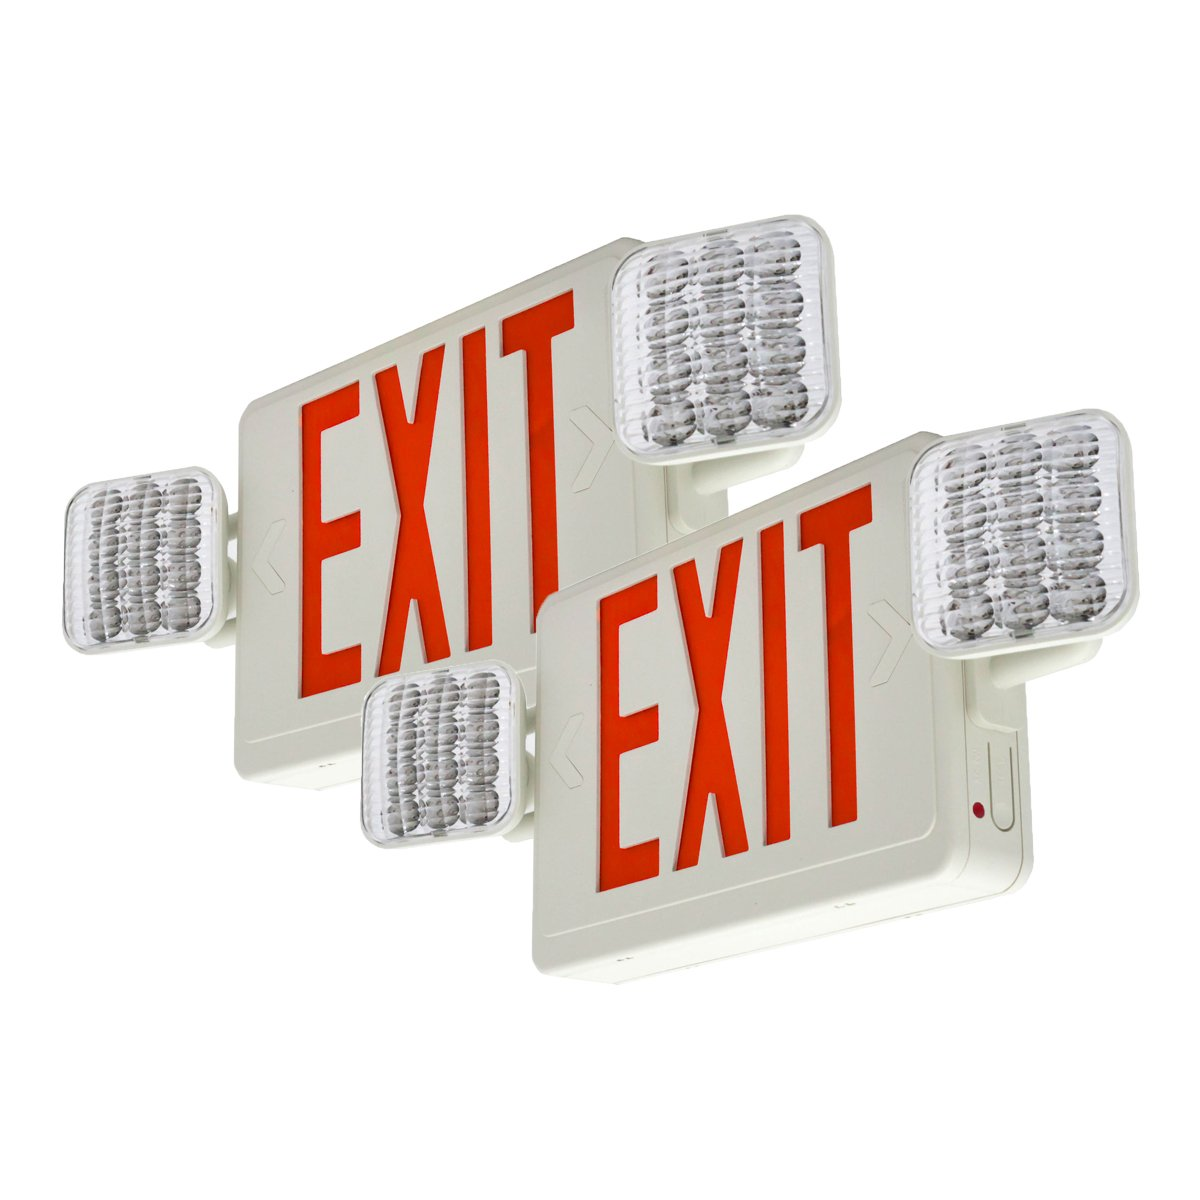 Lfi Lights 2 Pack Ul Certified Hardwired Red Led Combo Exit Emergency Lighting 6 Best Images Of Wiring Sign Light Combor2x2